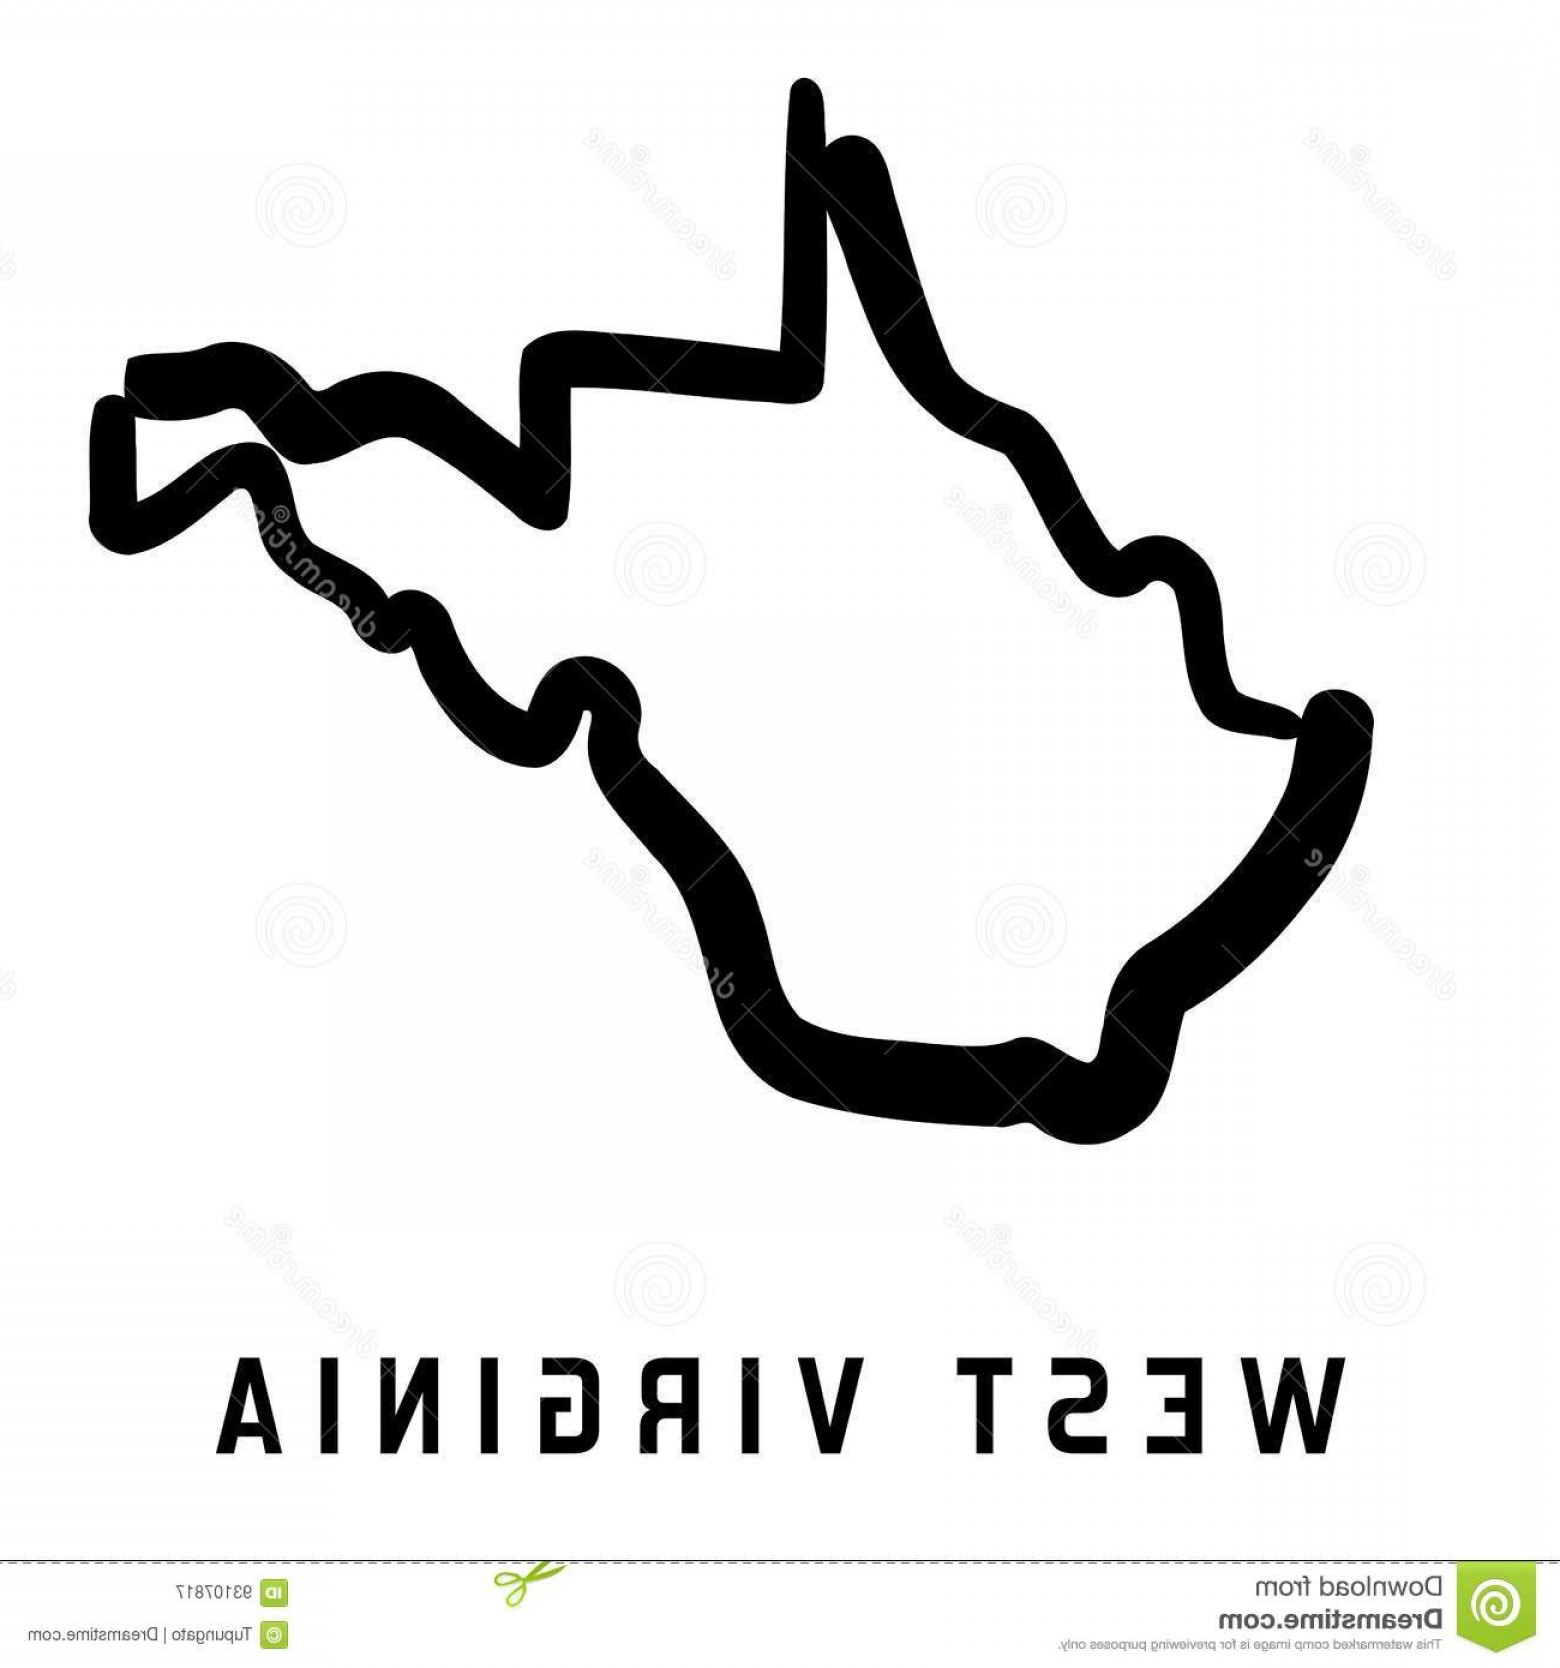 West Virginia Logo Vector: Stock Illustration West Virginia Simple Logo State Map Outline Smooth Simplified Us State Shape Map Vector Image